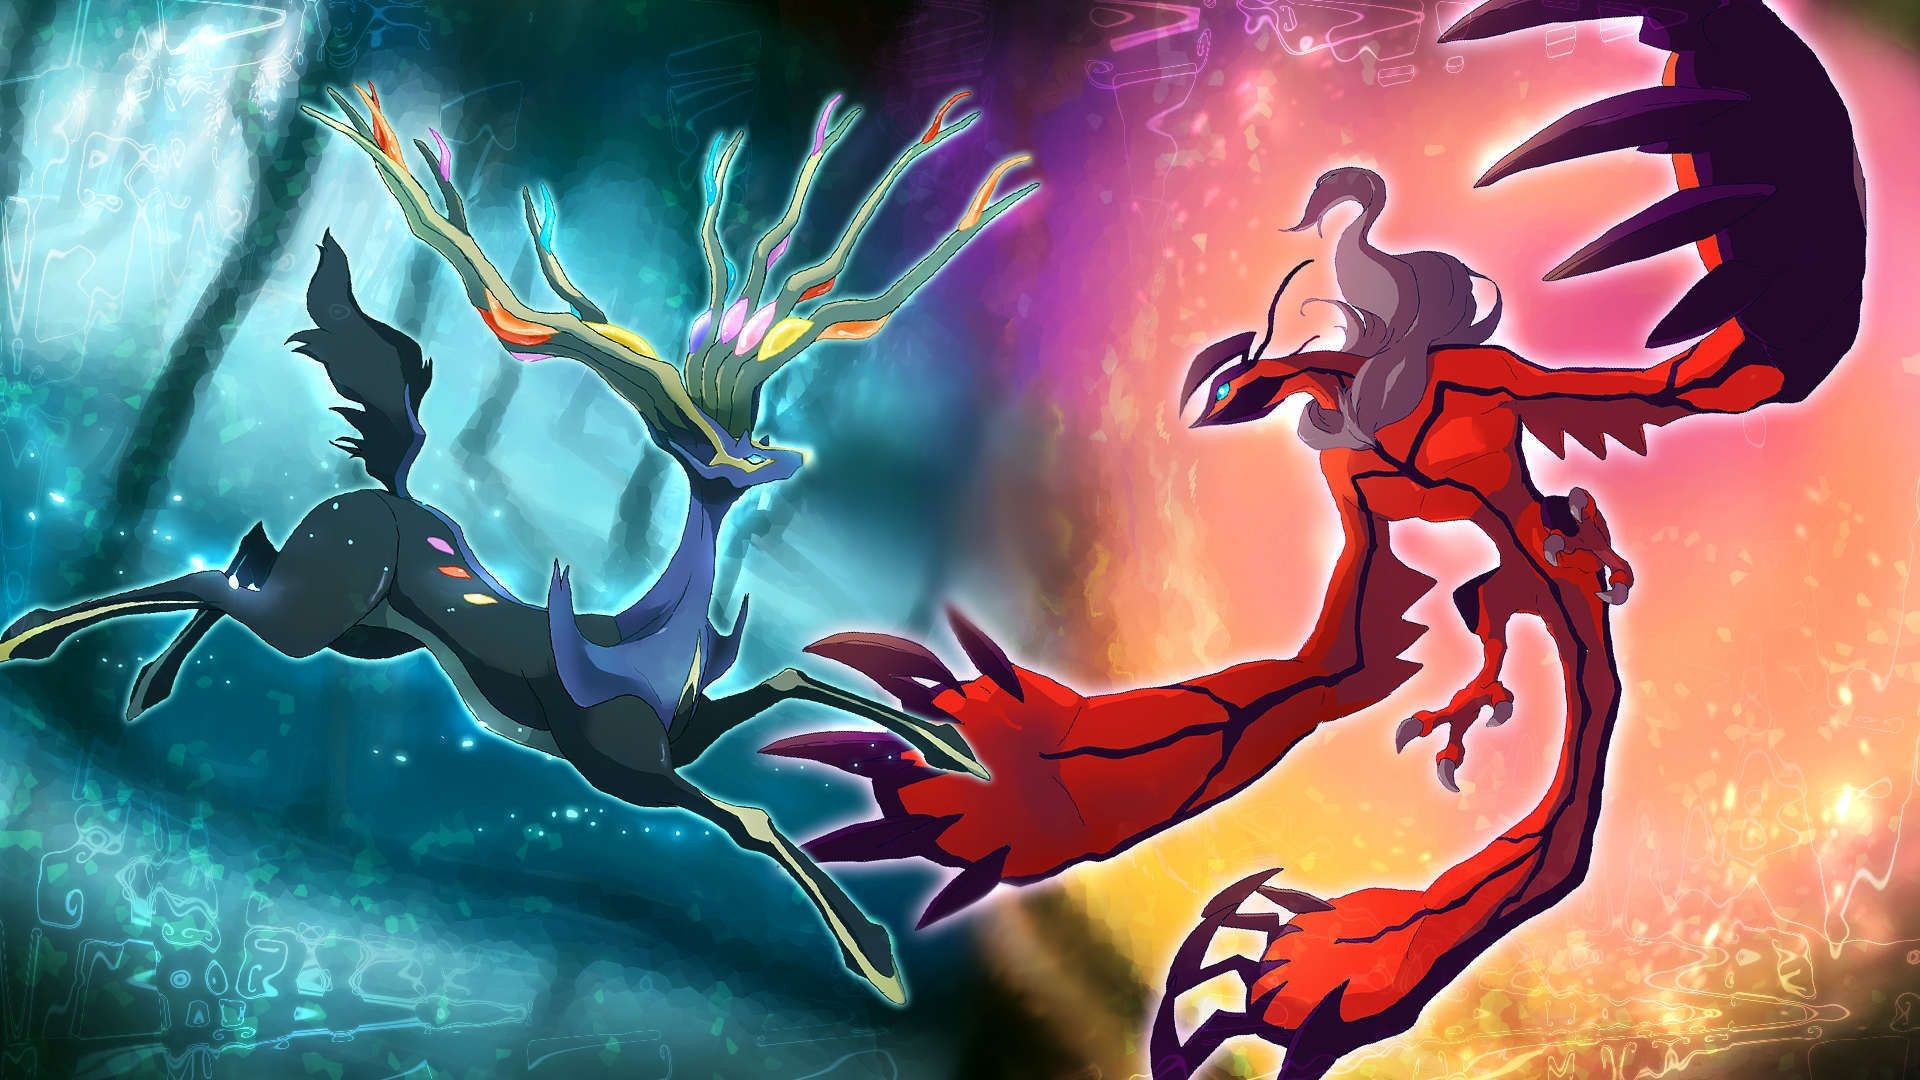 1920x1080 All Legendary Pokemon Wallpapers - Wallpaper Cave